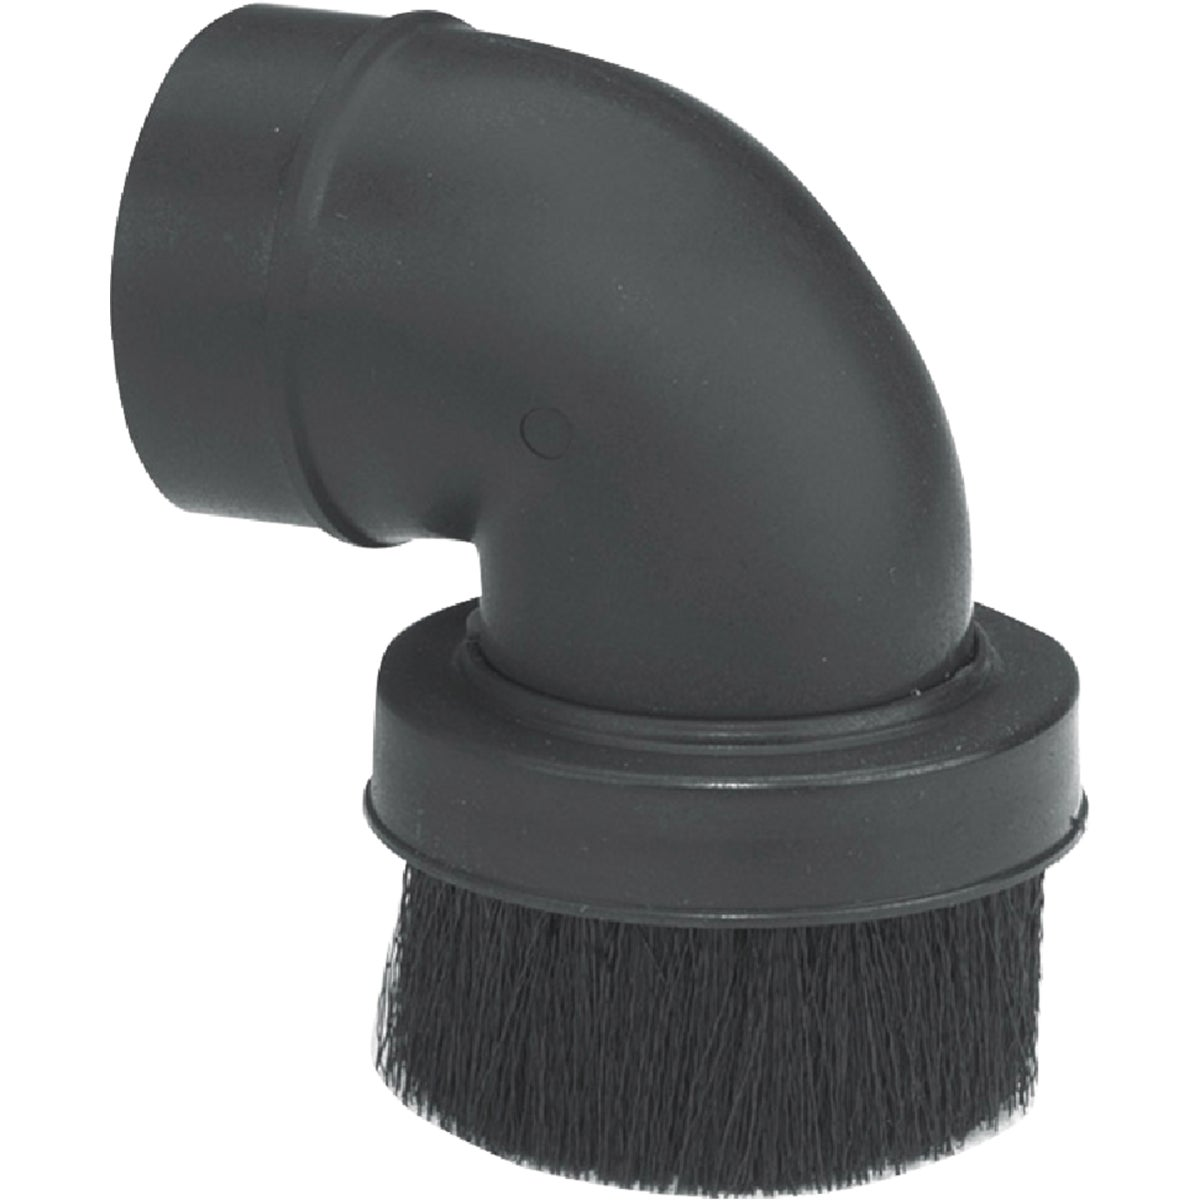 RIGHT ANGLE BRUSH - 9067900 by Shop Vac Corp